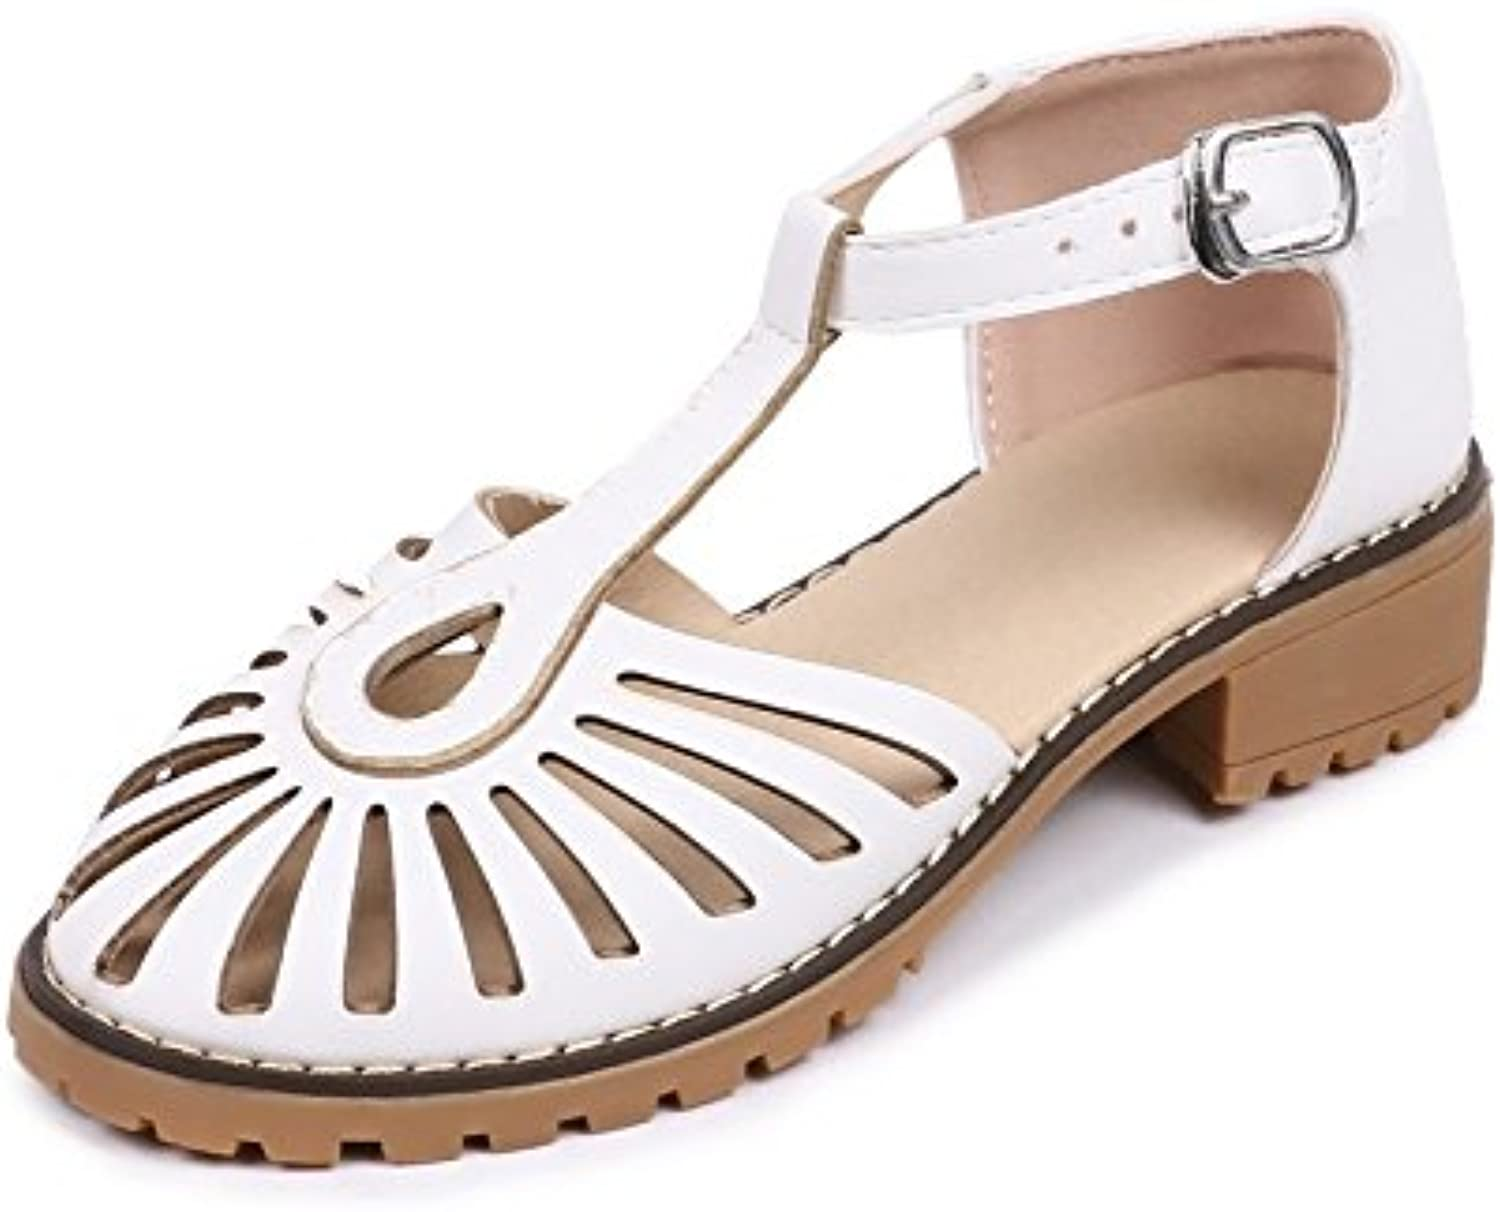 Women's Summer Large Size Sandals Increase shoes T-Shaped Toe Ankle High Heels Breathable Casual shoes 34-43